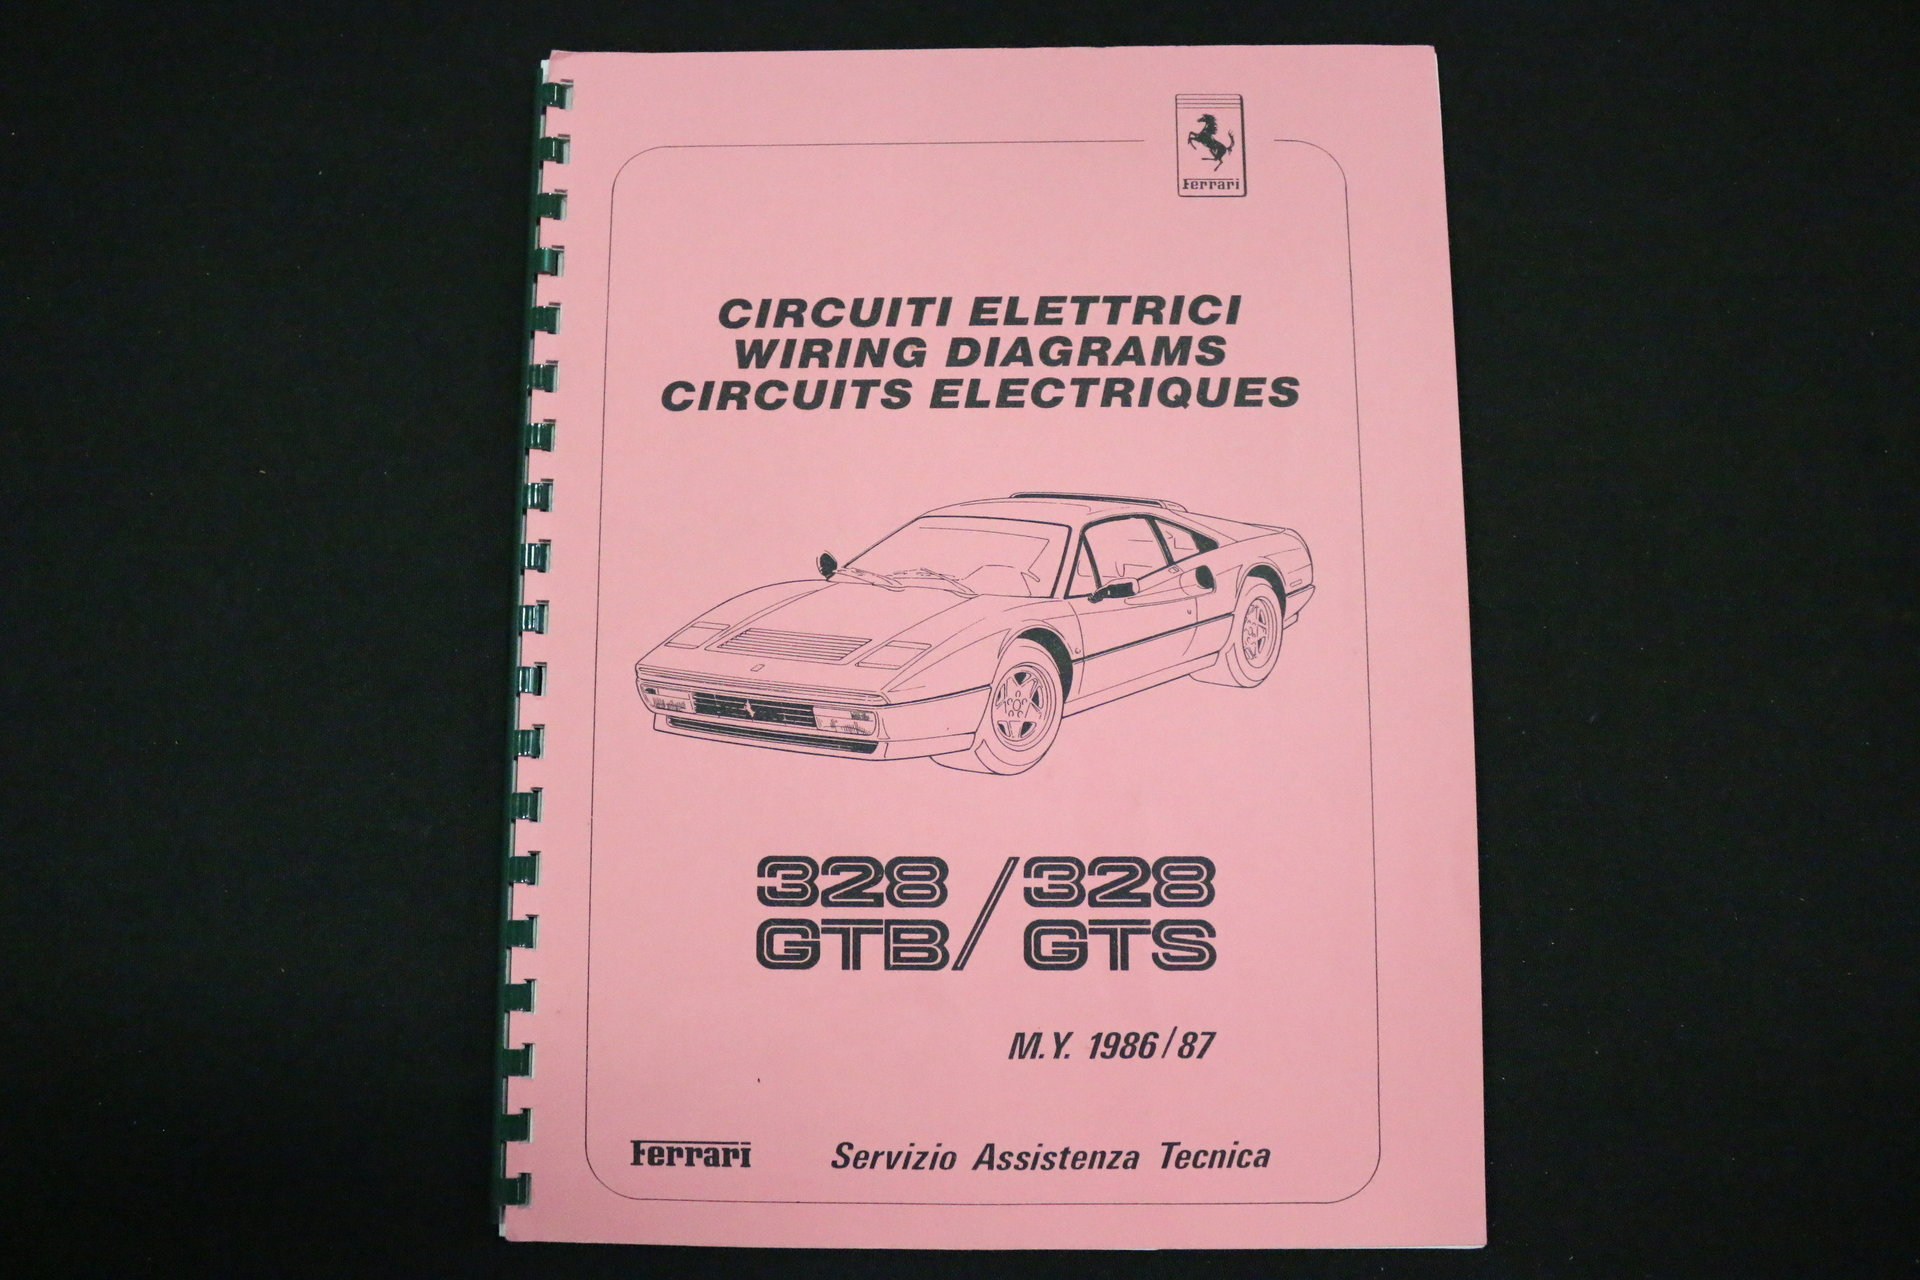 1986 Ferrari 328 Gts Streetside Classics The Nations Trusted 360 Wiring Diagrams View